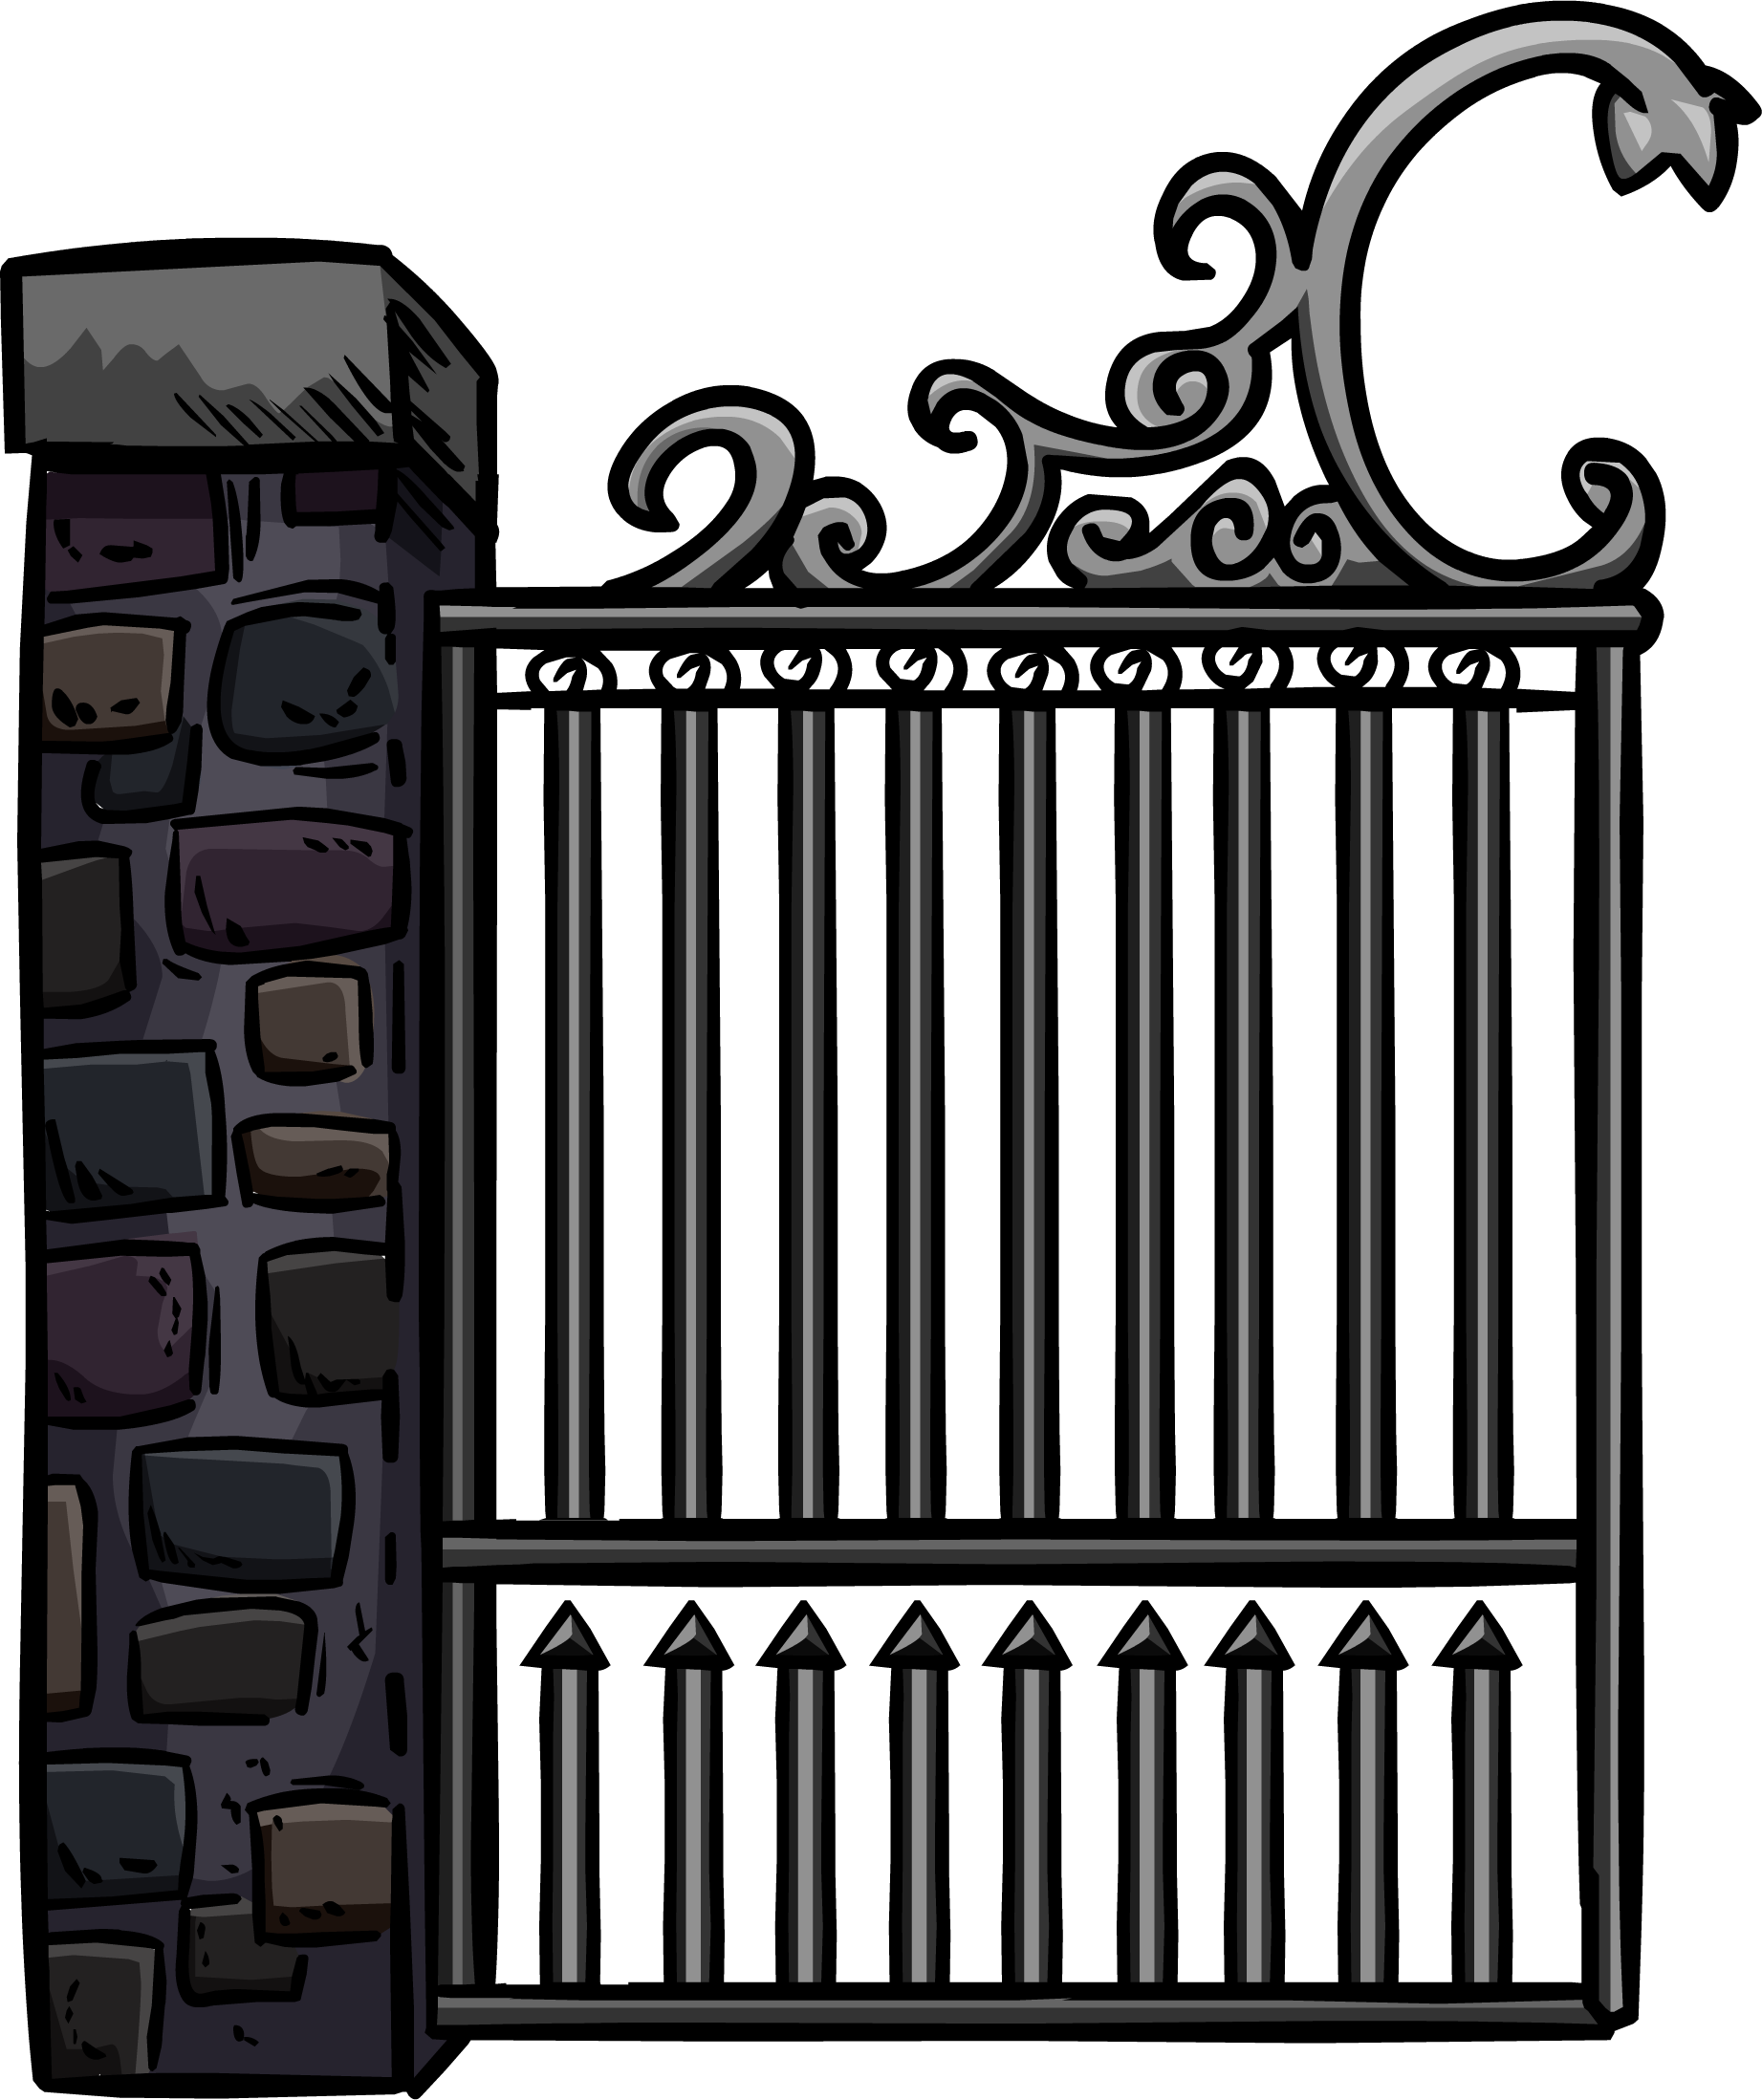 Iron gate png. Image irongate club penguin